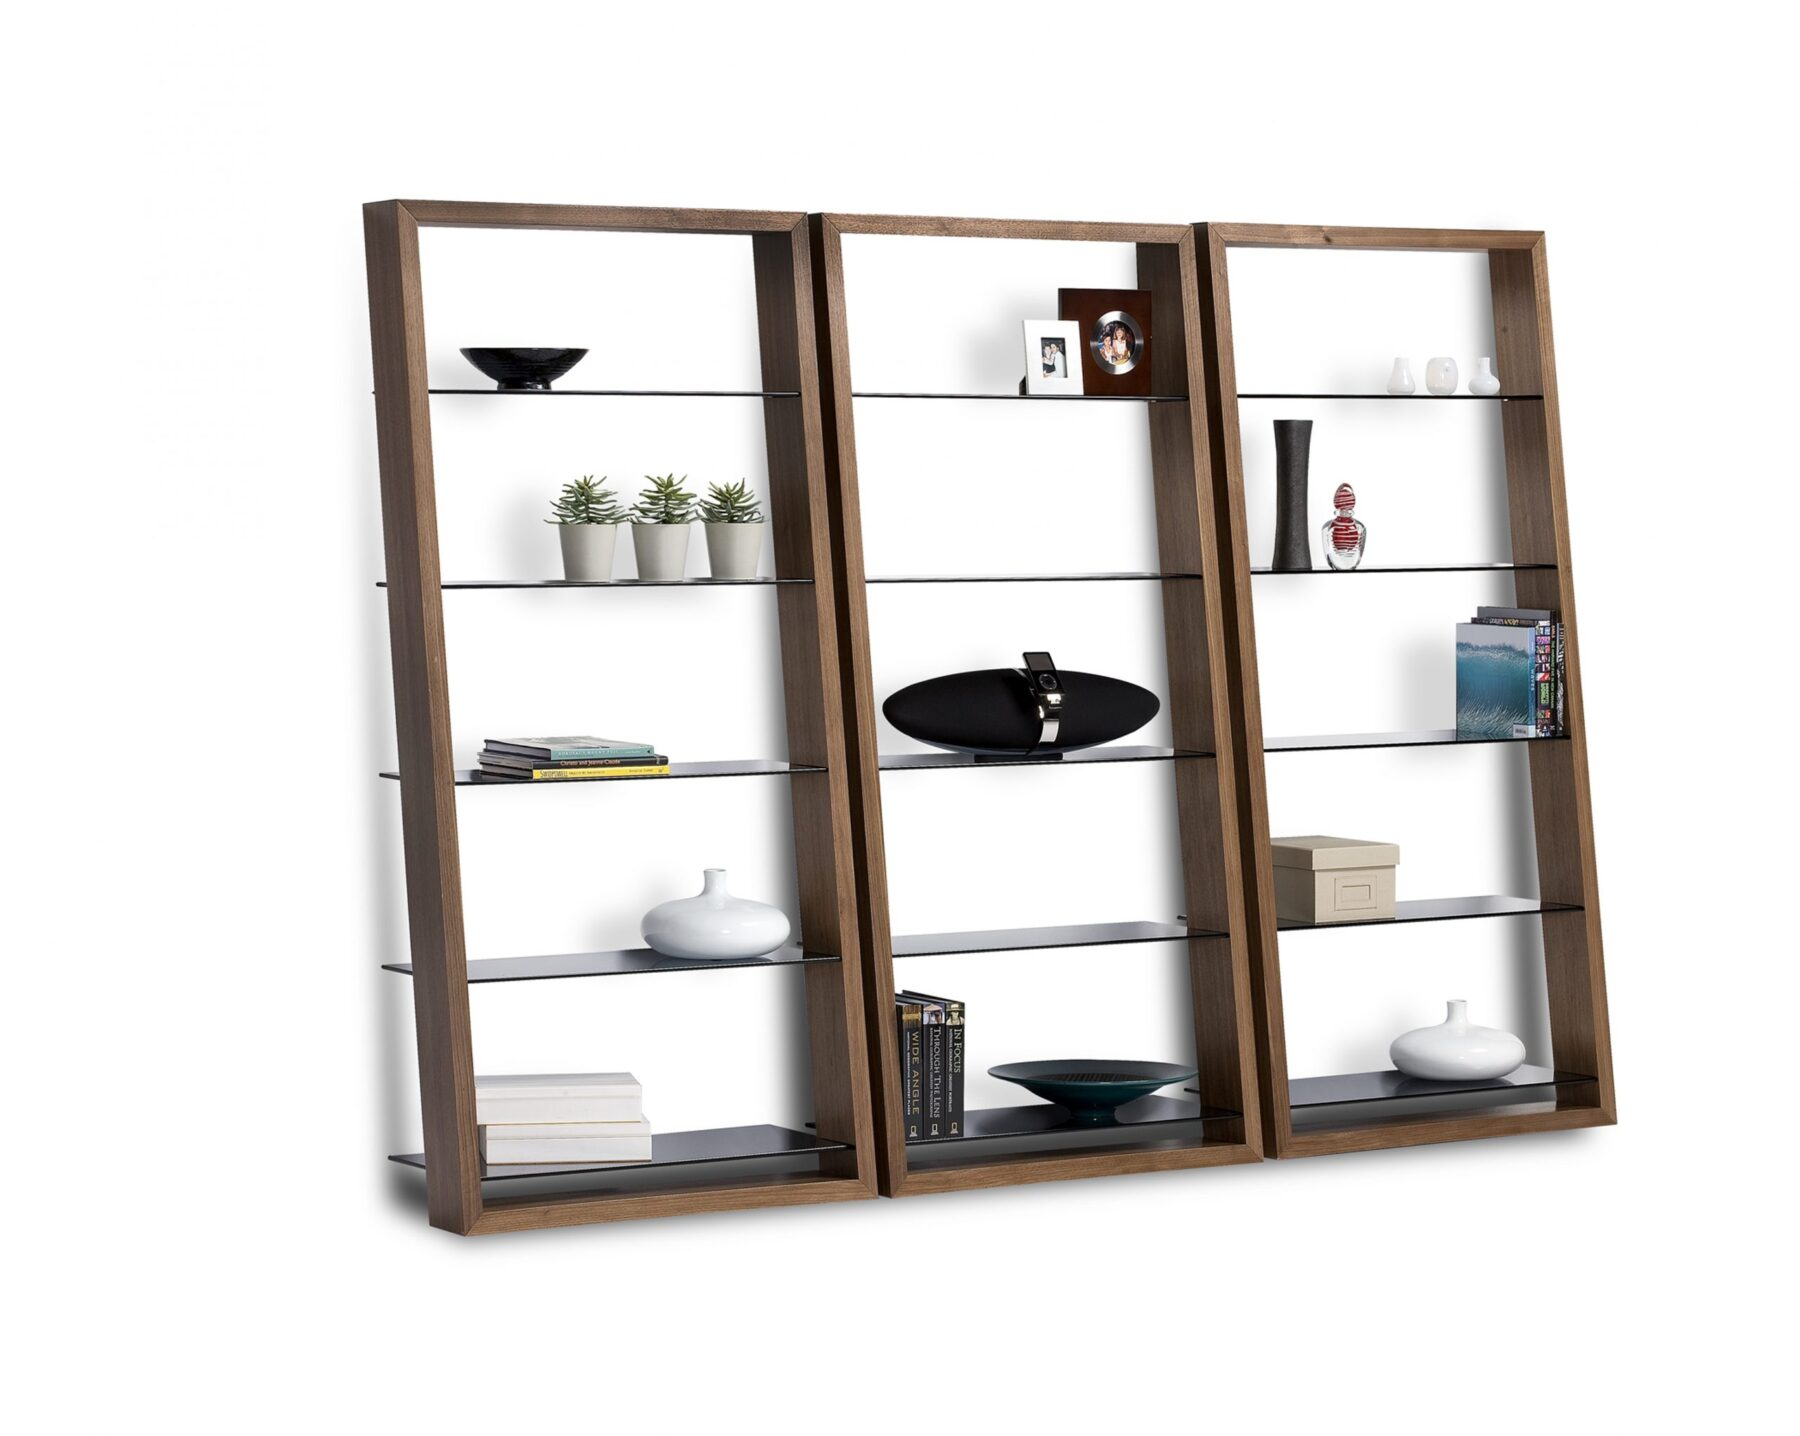 eileen-5156-walnut-bdi-leaning-shelf-1